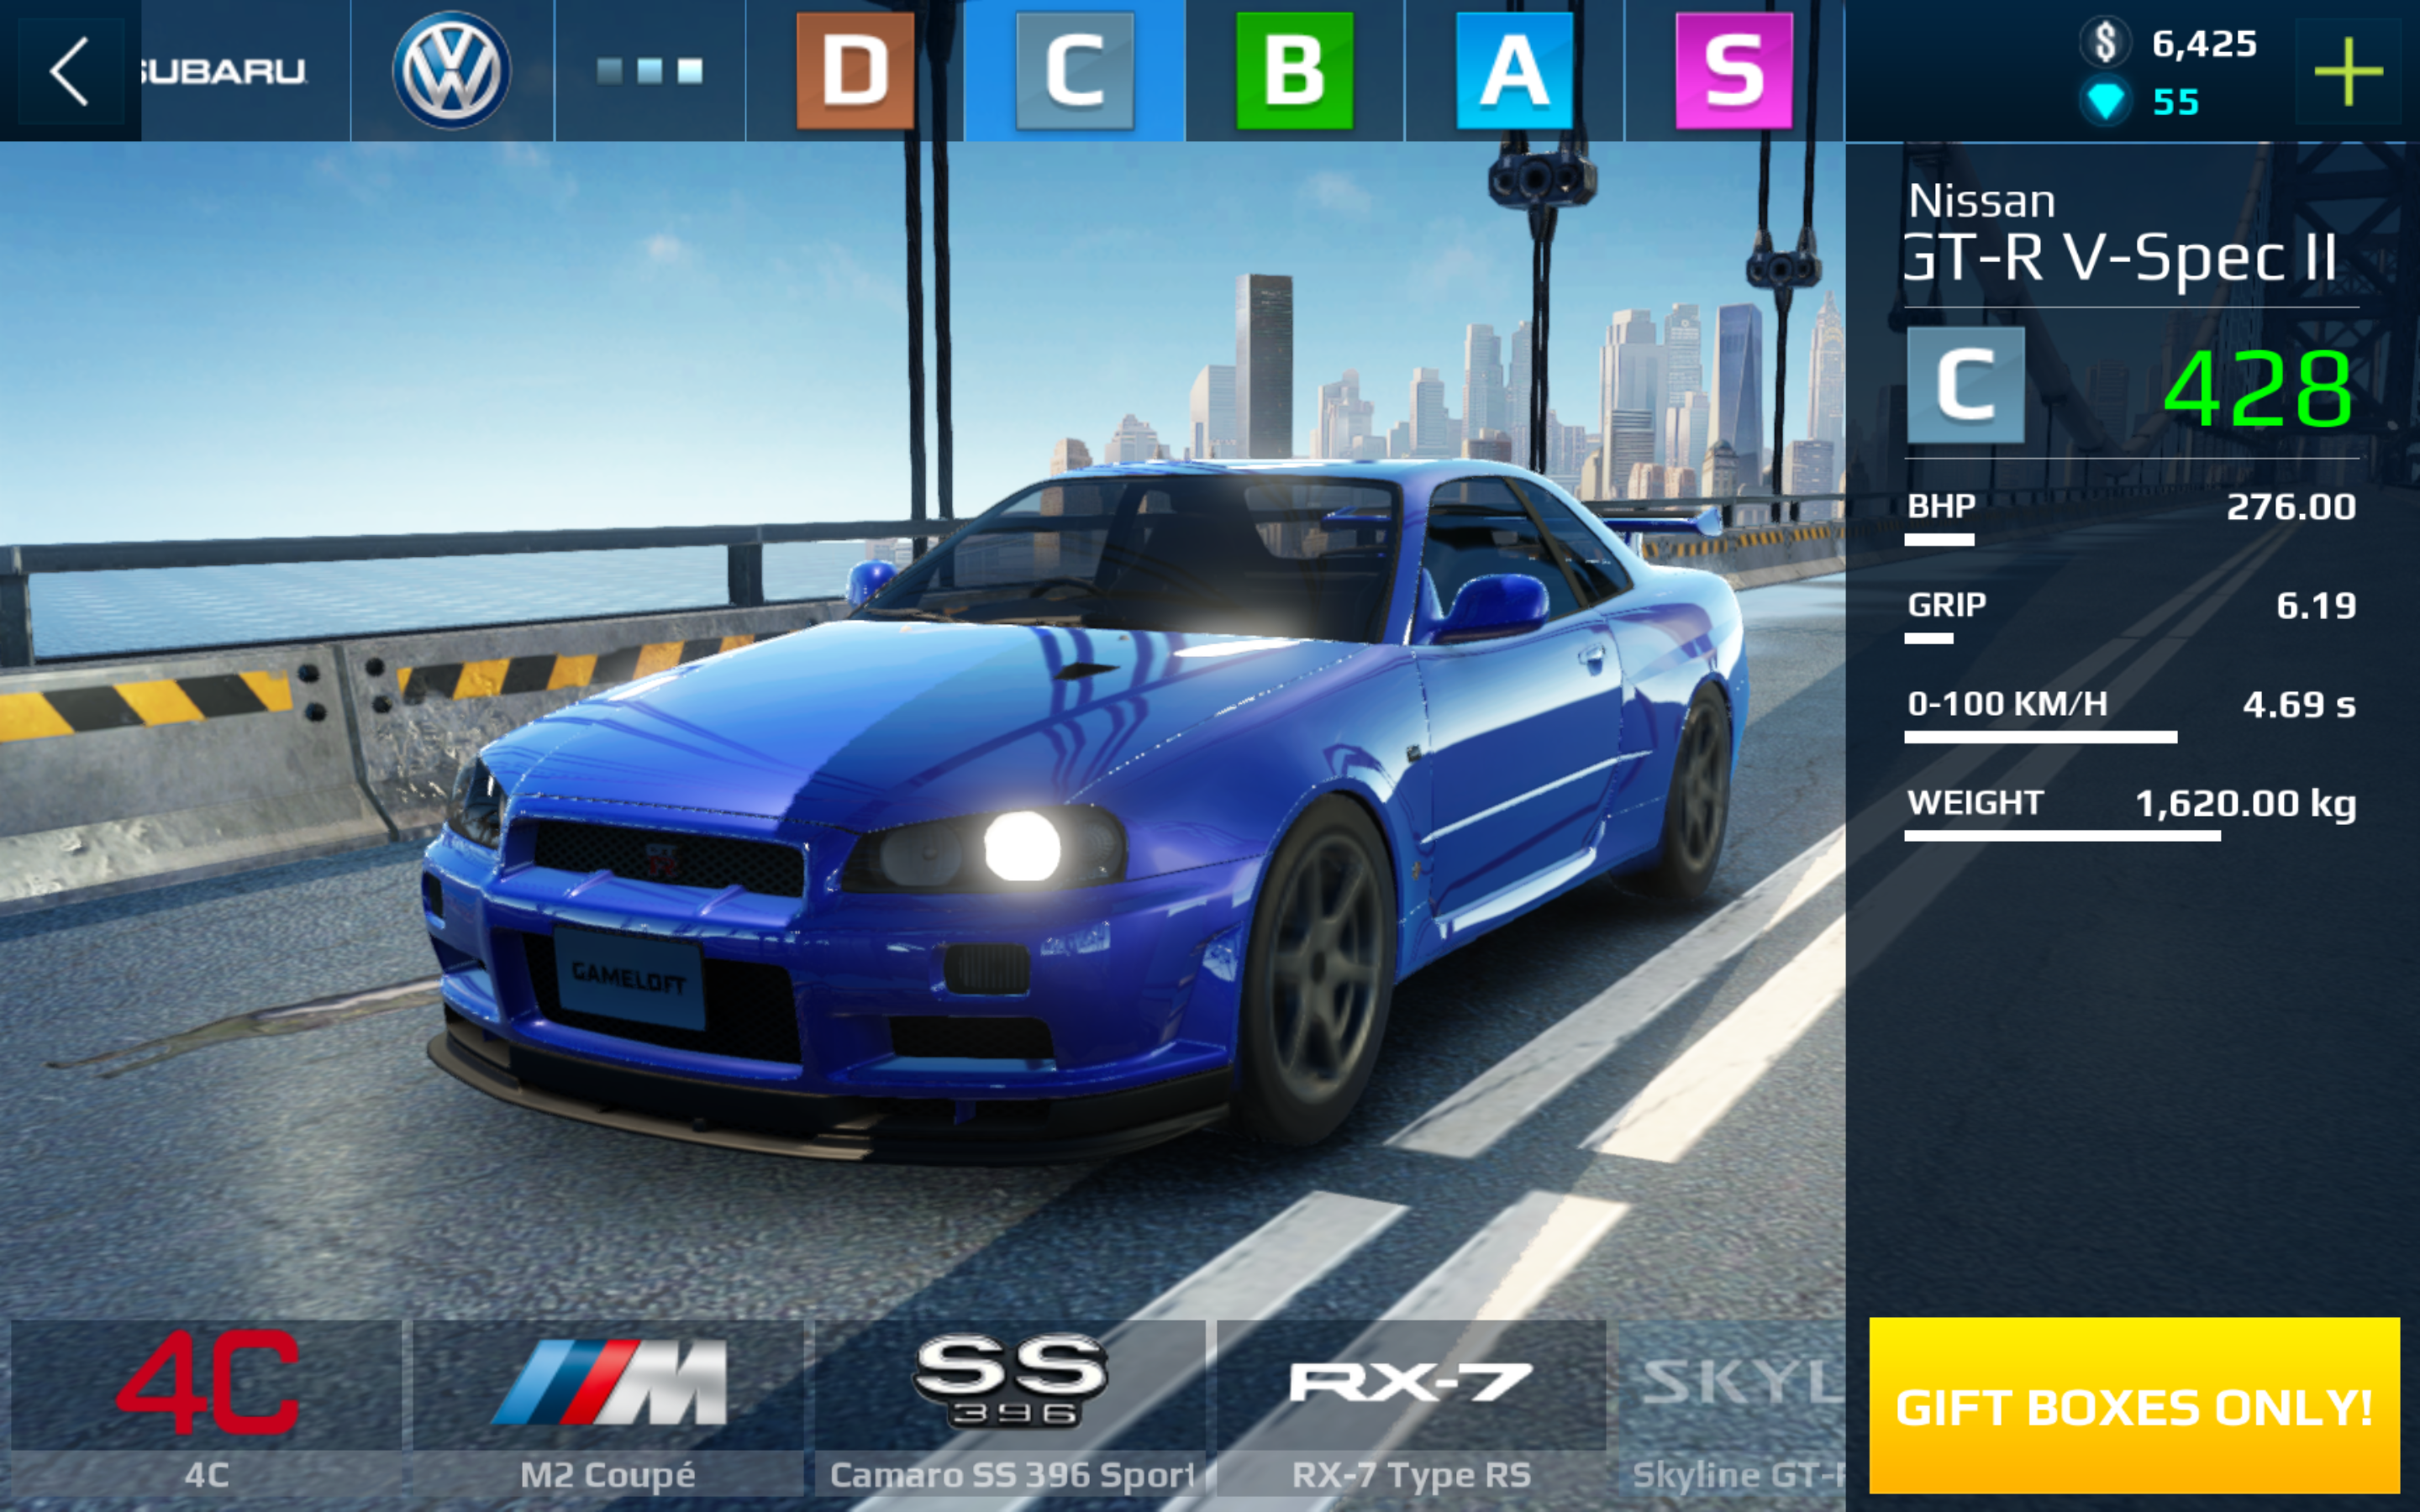 Marvelous The Nissan Skyline GT R (R34) Is Now Correctly Named Nissan Skyline GT R  V Spec II (R34) In This Game. The Skyline Is Purchasable For 420 Diamonds  Or Can Be ...